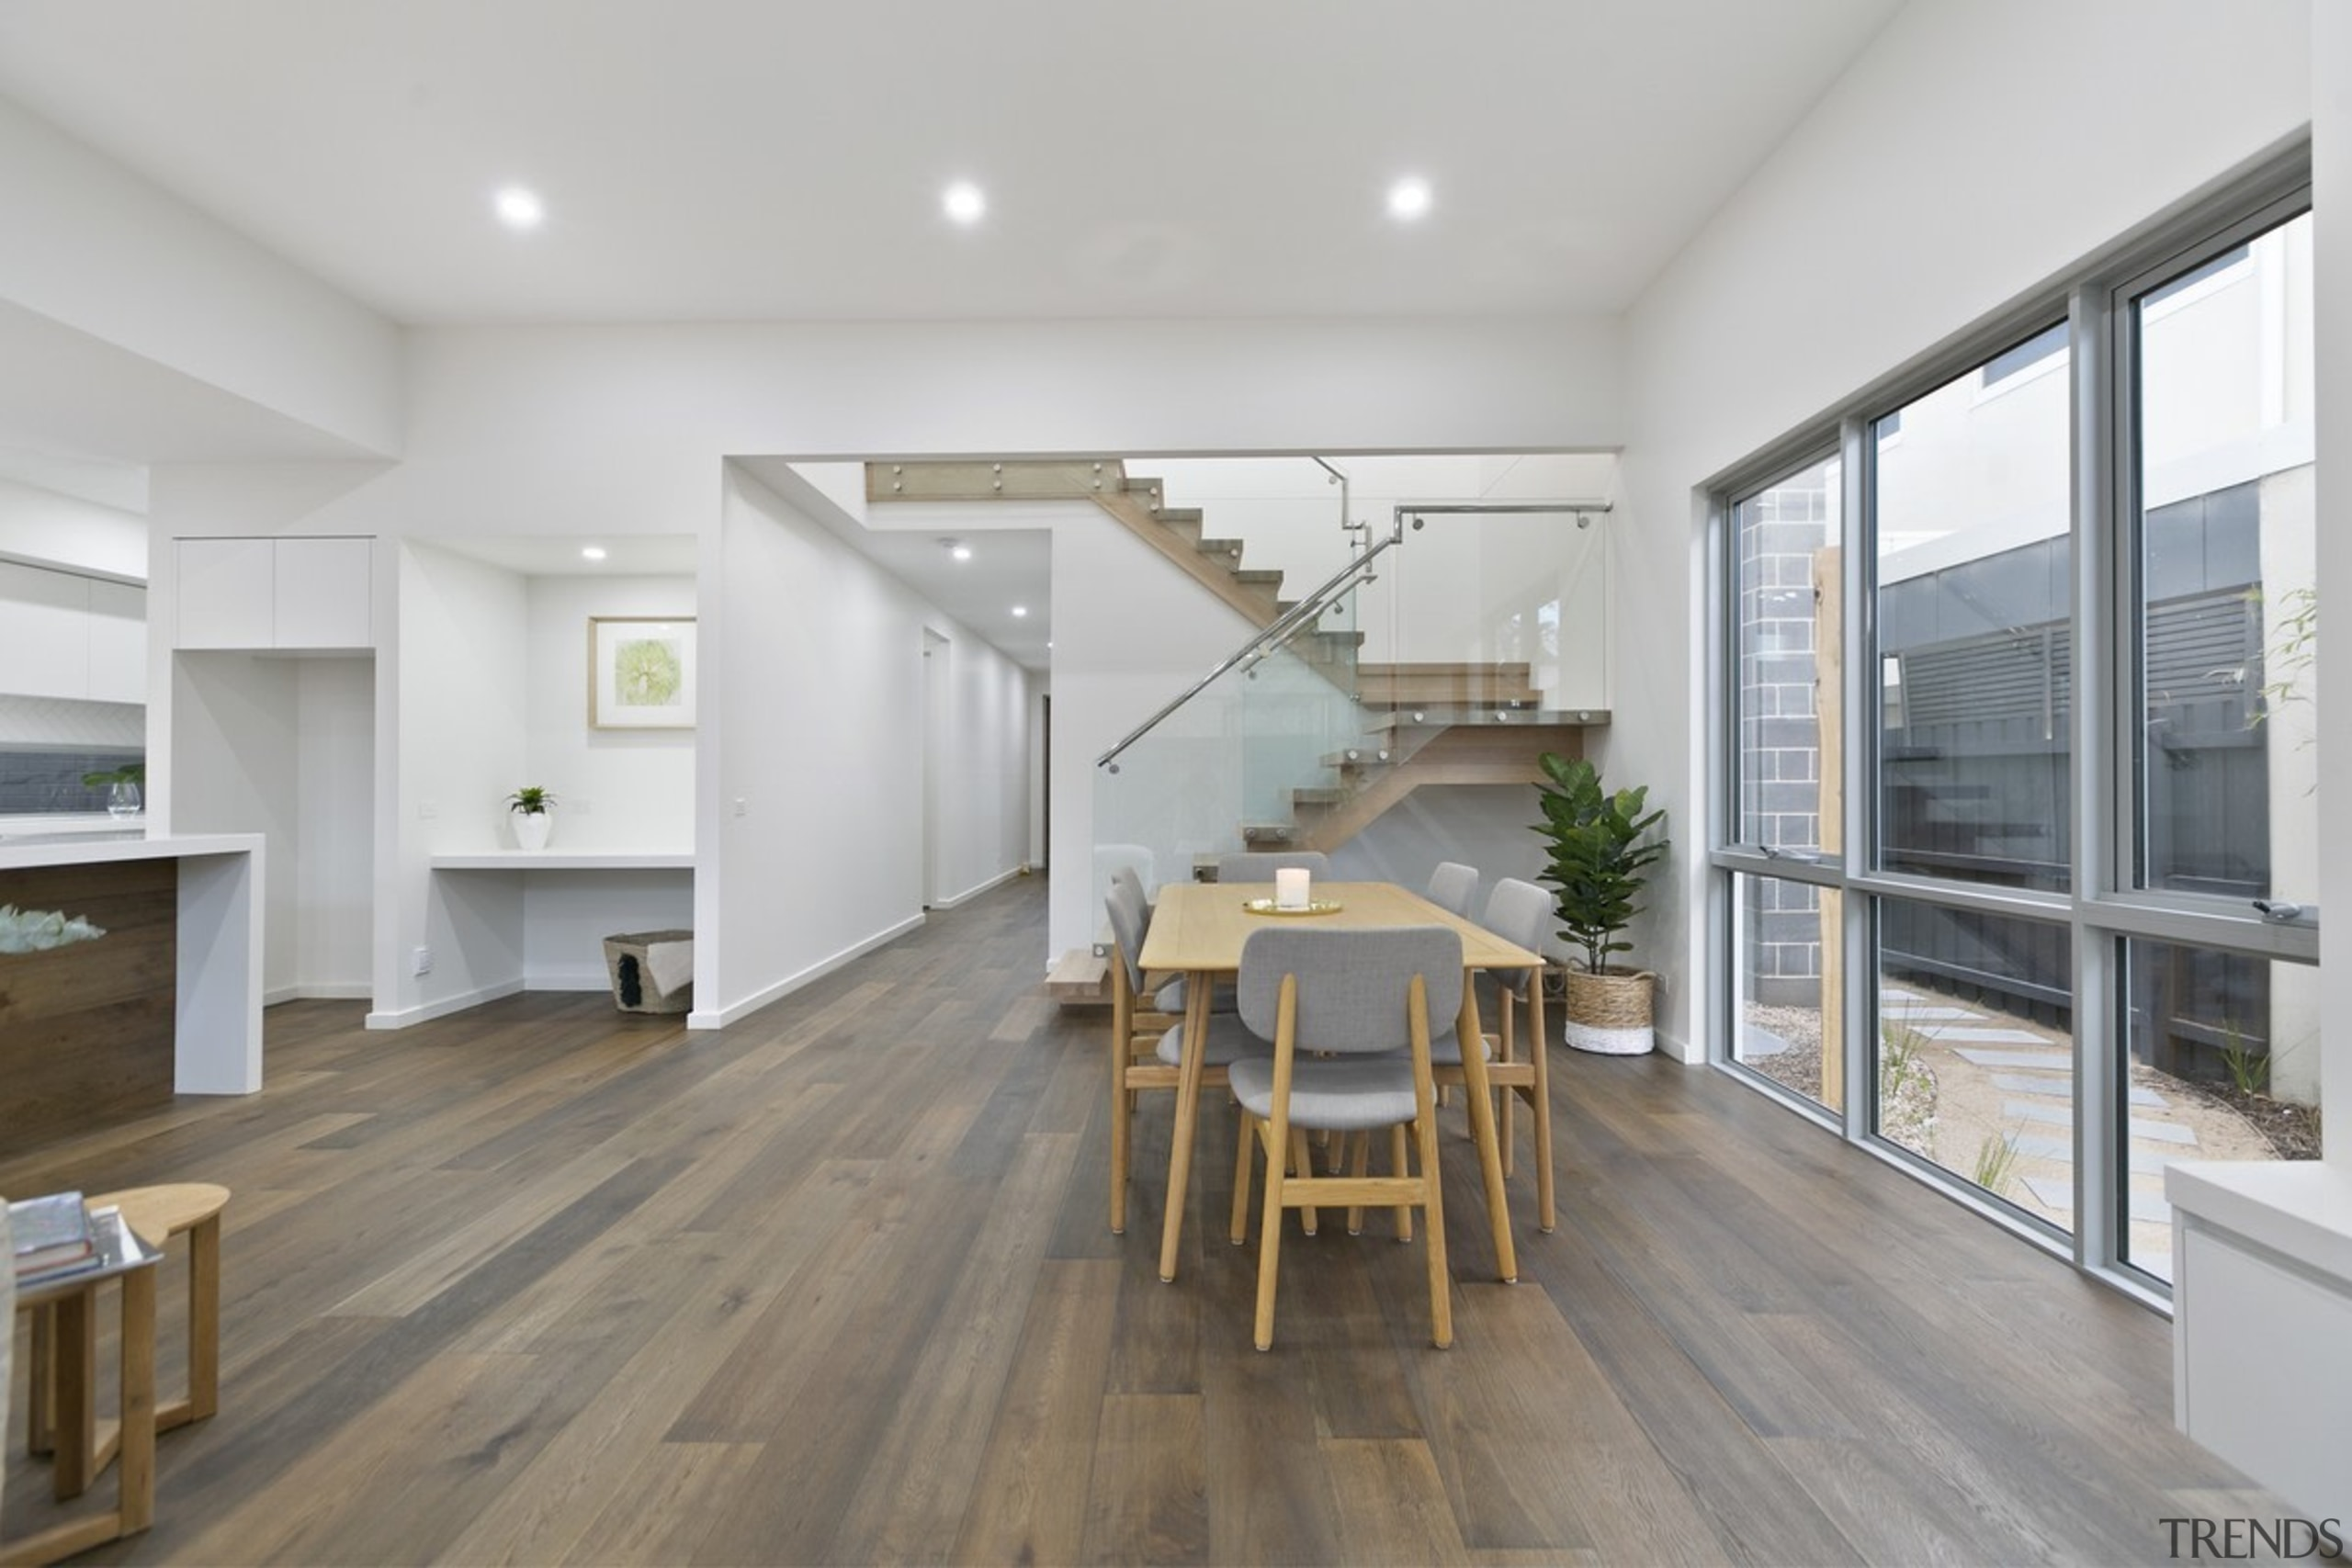 The wood floors run the length of the architecture, floor, flooring, house, interior design, real estate, wood flooring, gray